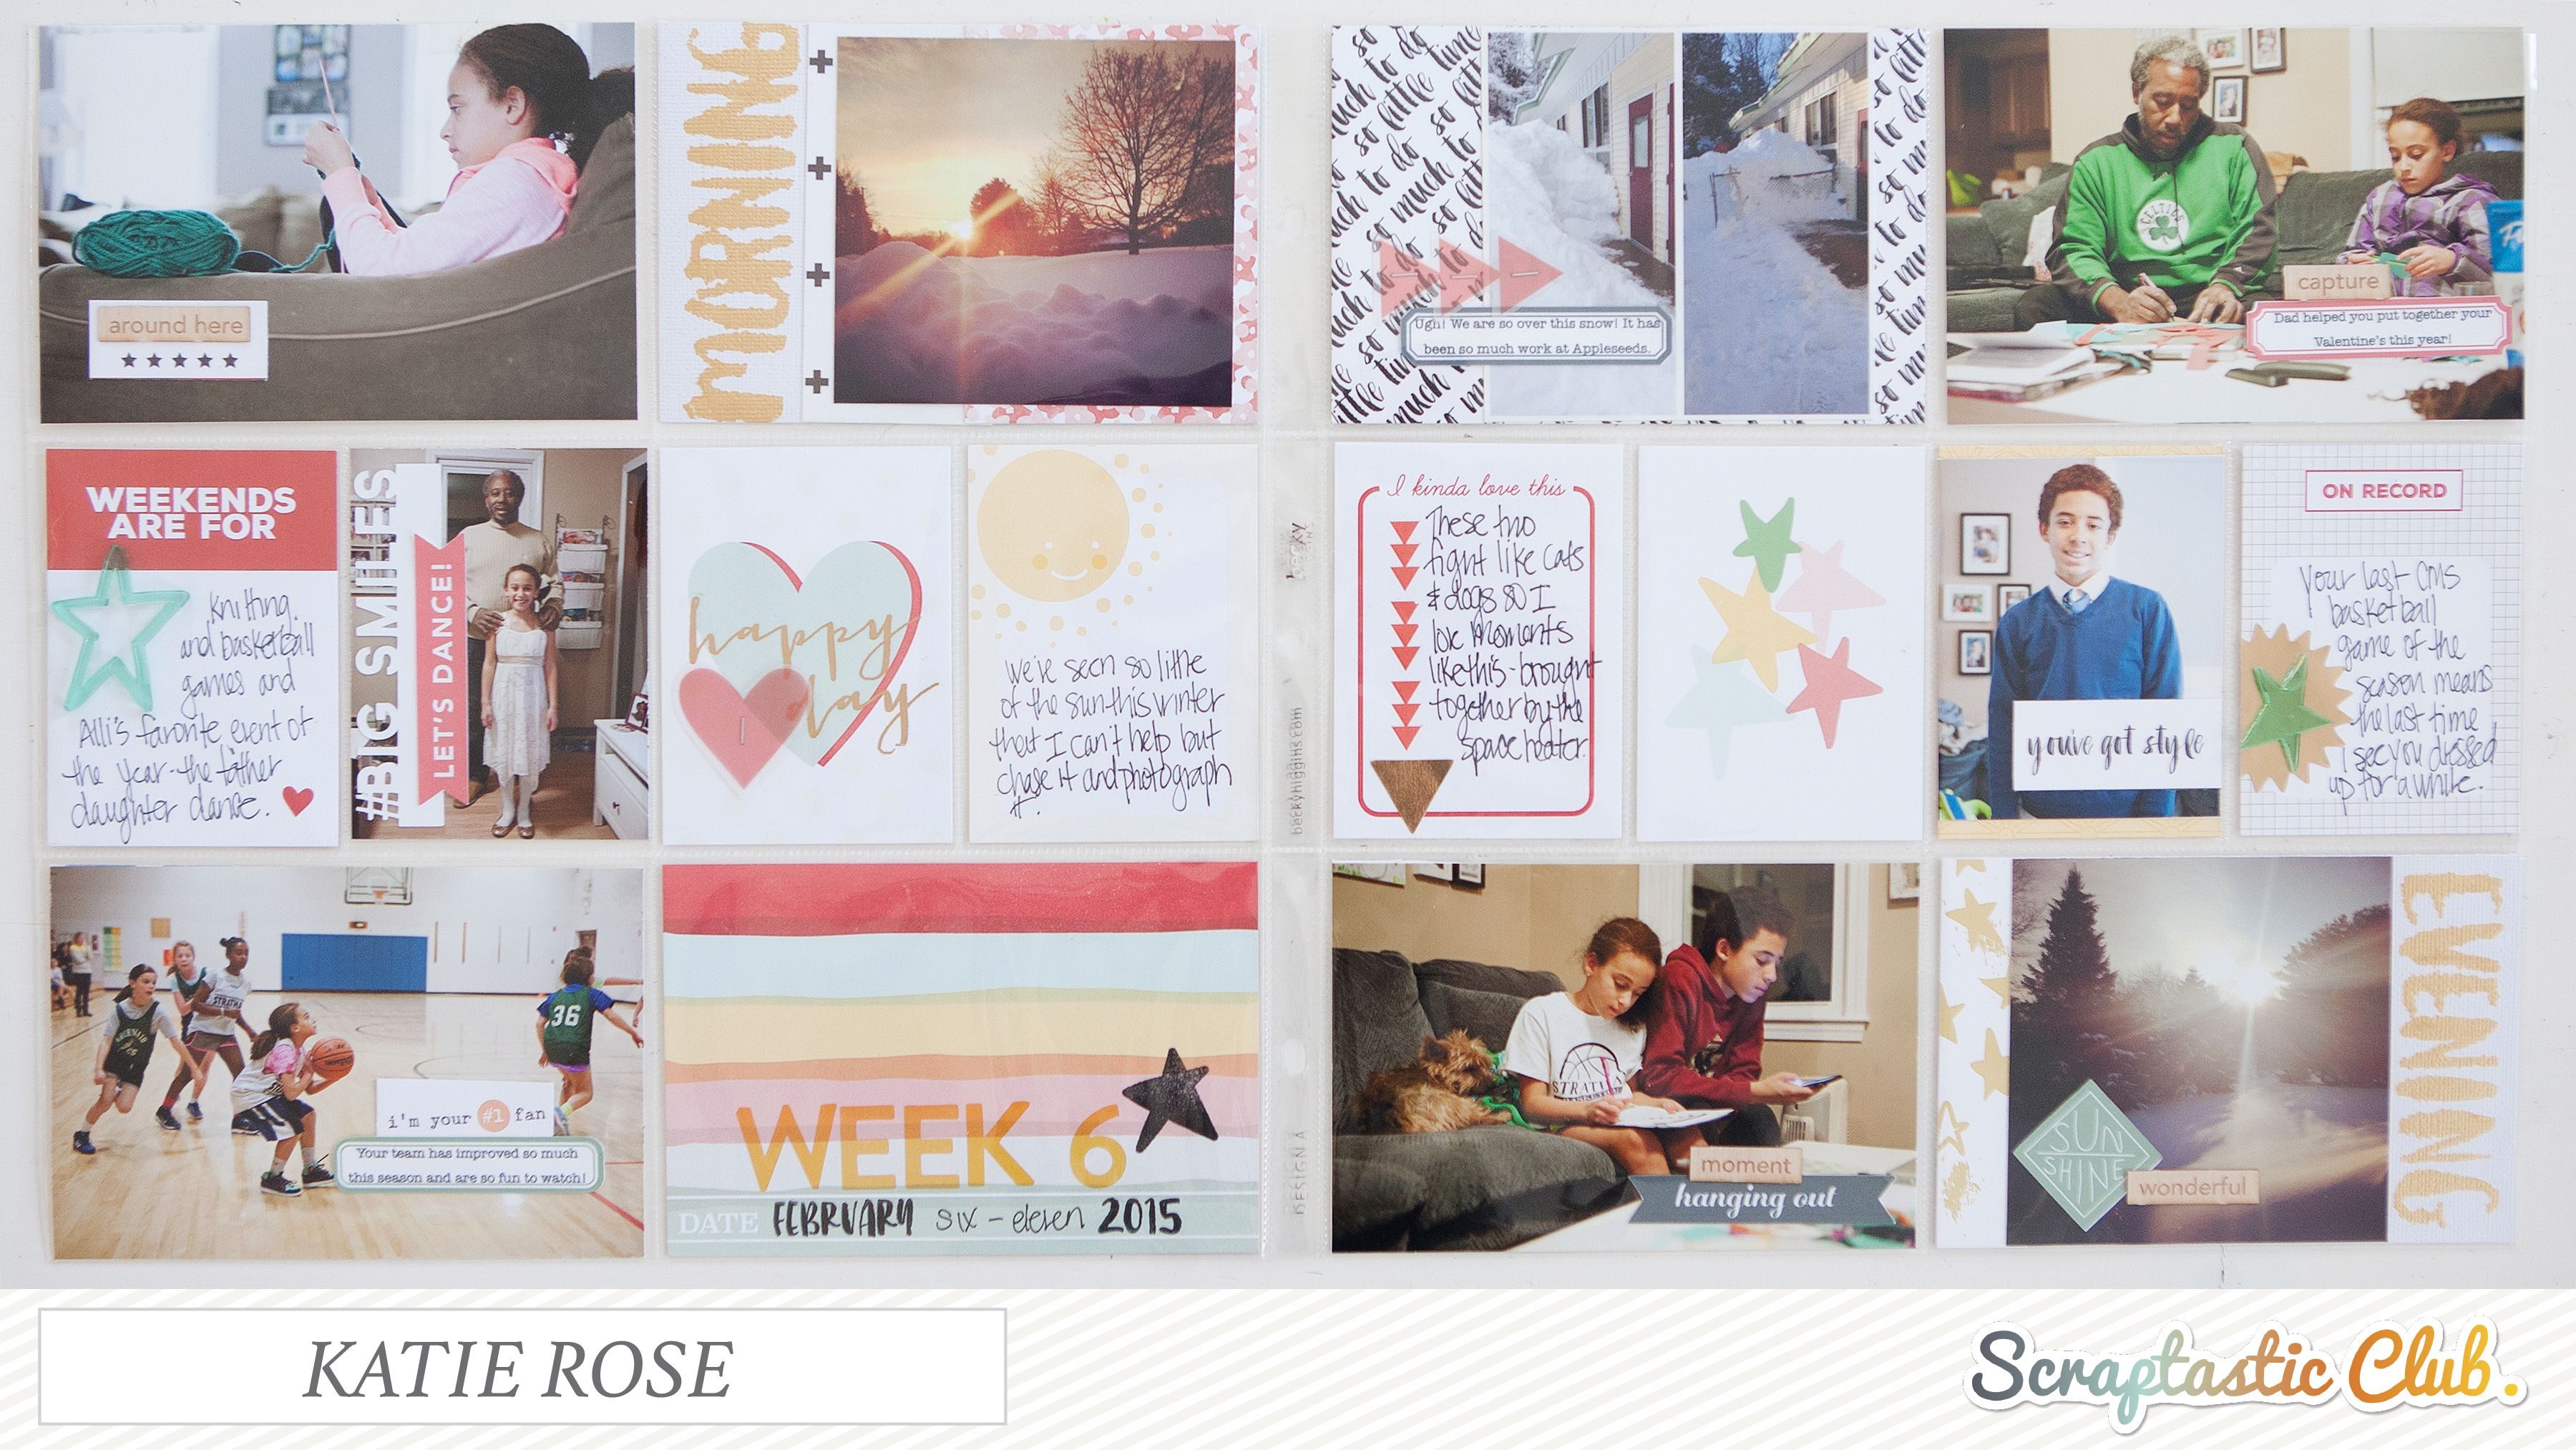 Week 6 by Katie Rose using Scraptastic Club's March This Life Noted kit.